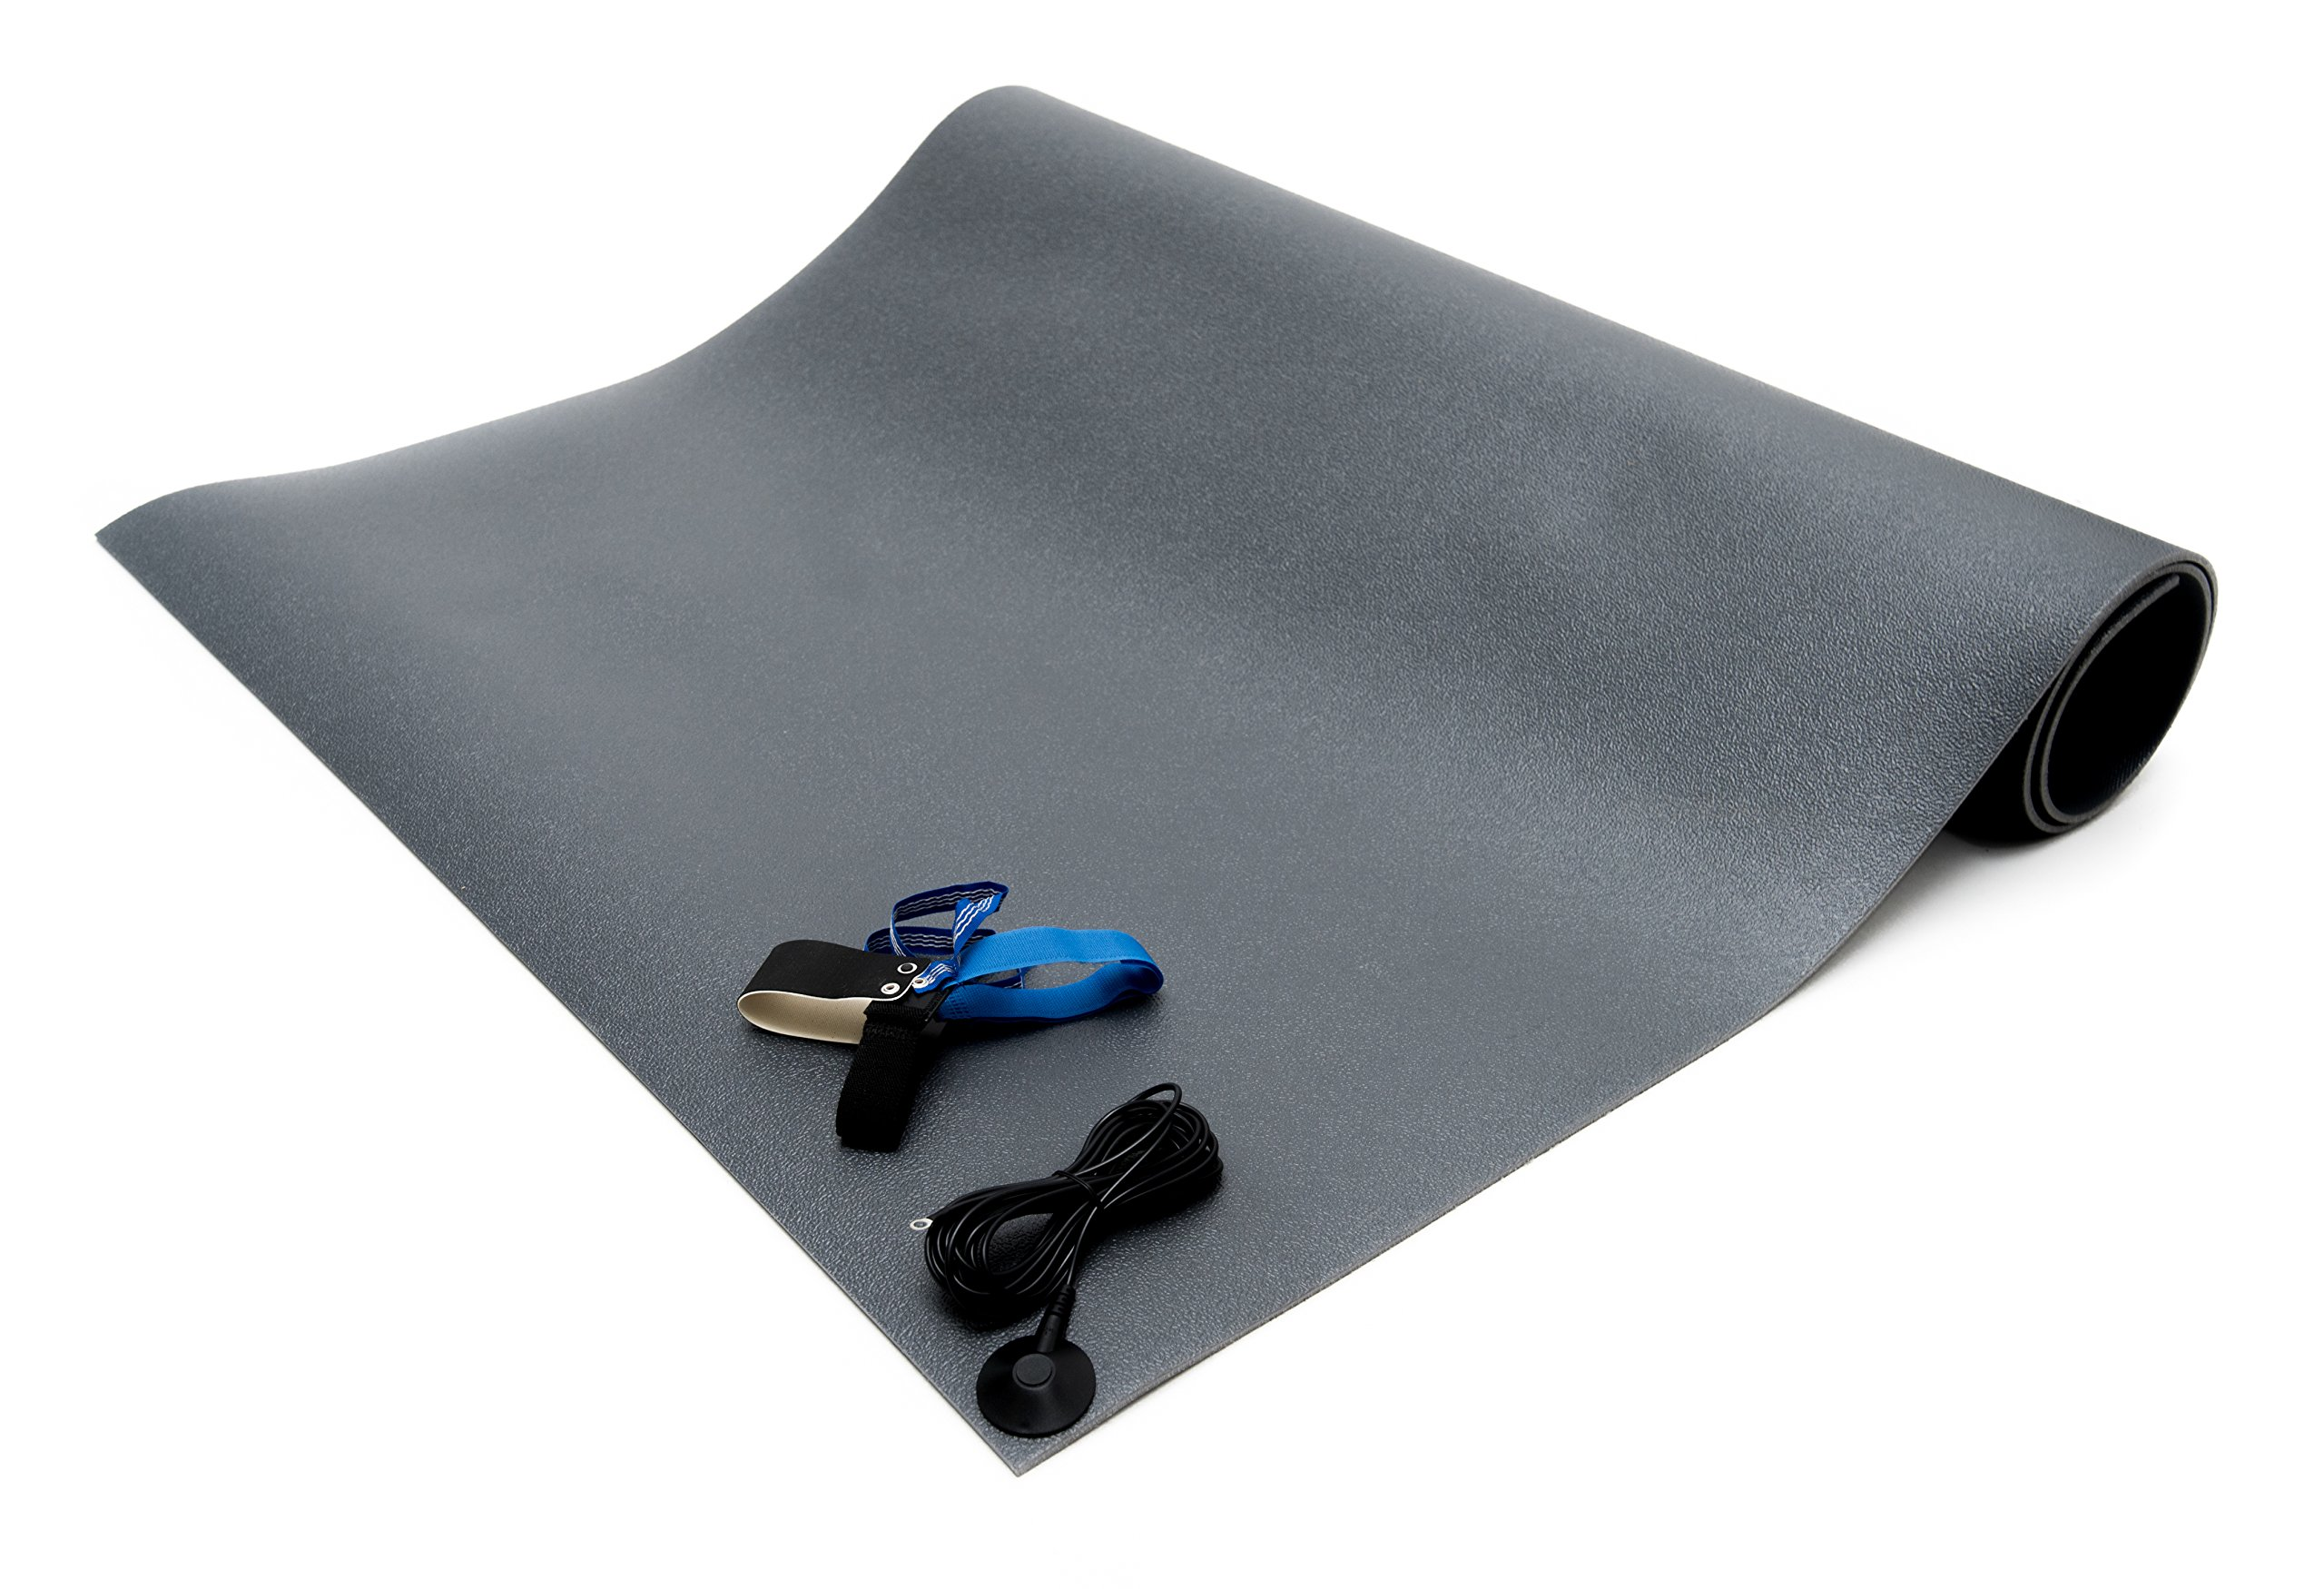 Bertech ESD Chair Mat Kit with a Heel Grounder and Grounding Cord, 3' Wide x 3' Long x 0.190'' Thick, Gray